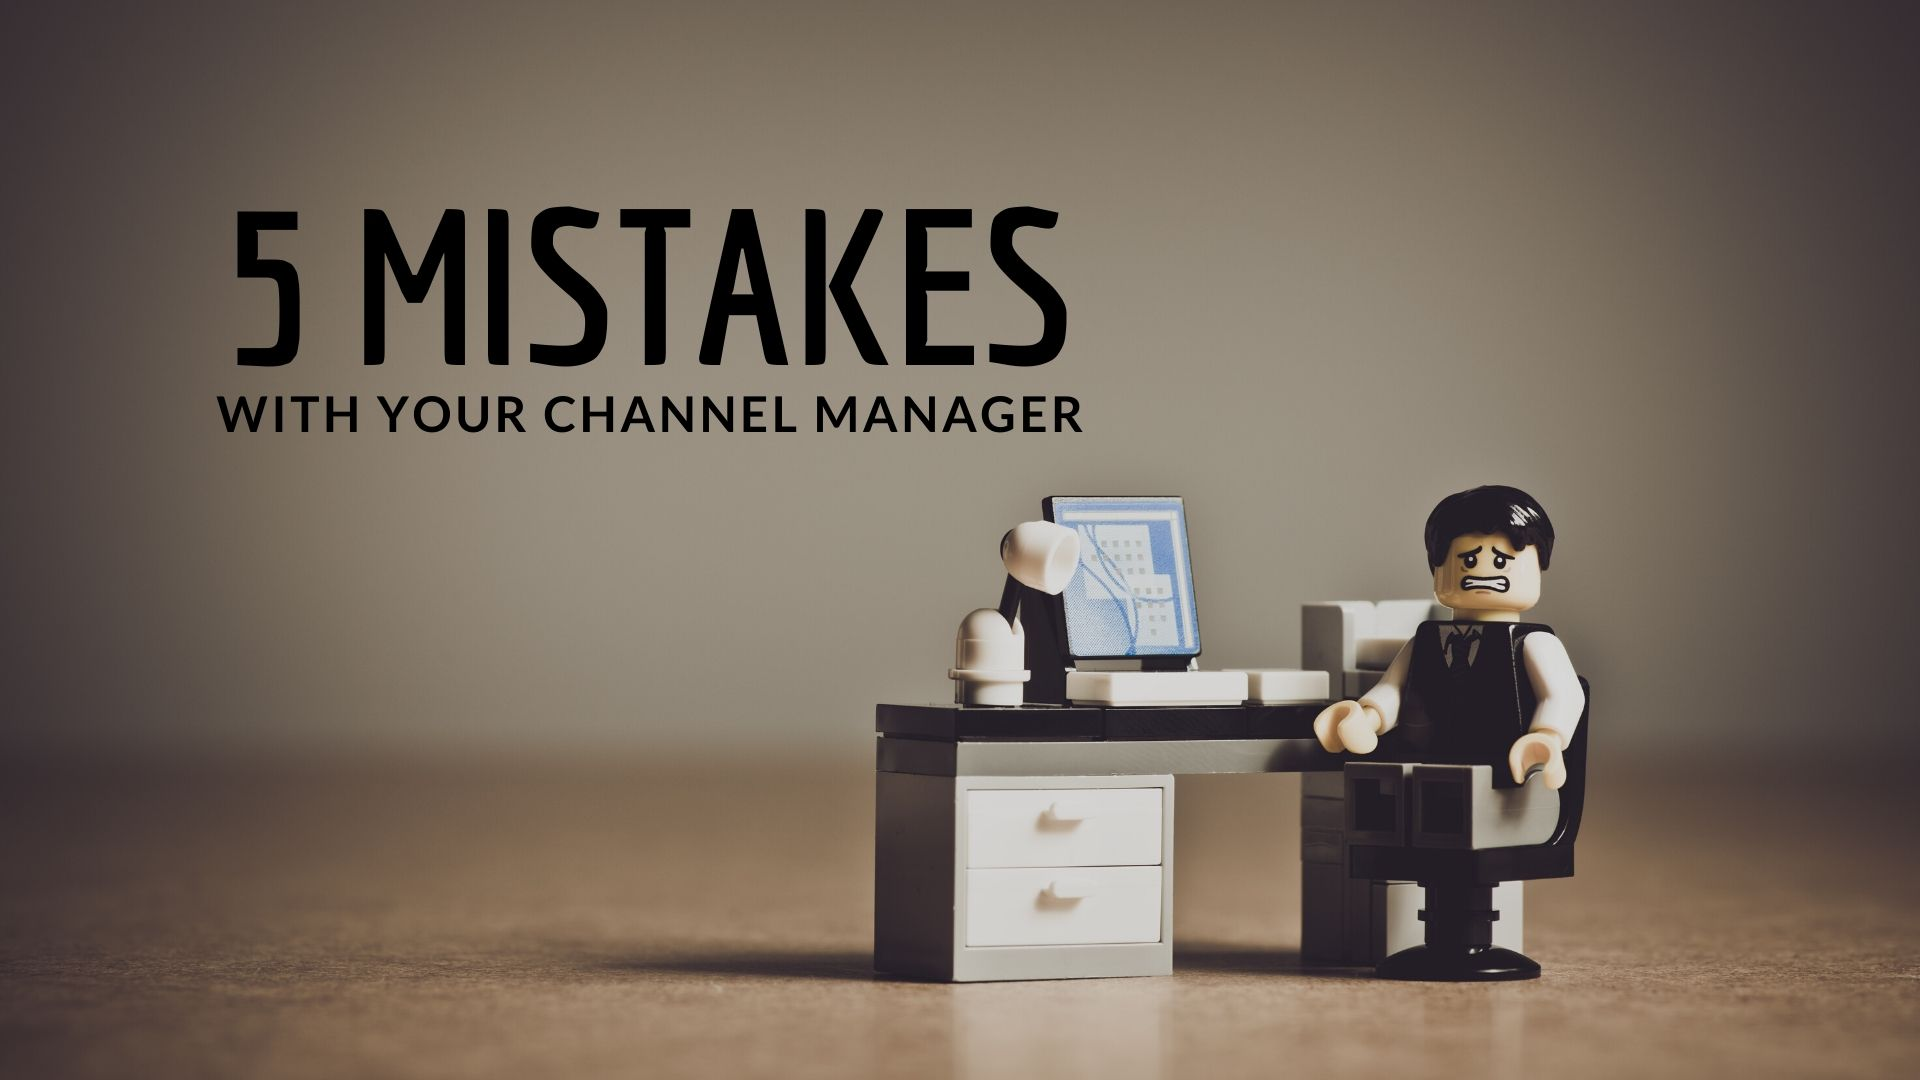 5 mistakes with the channel manager that penalize sales